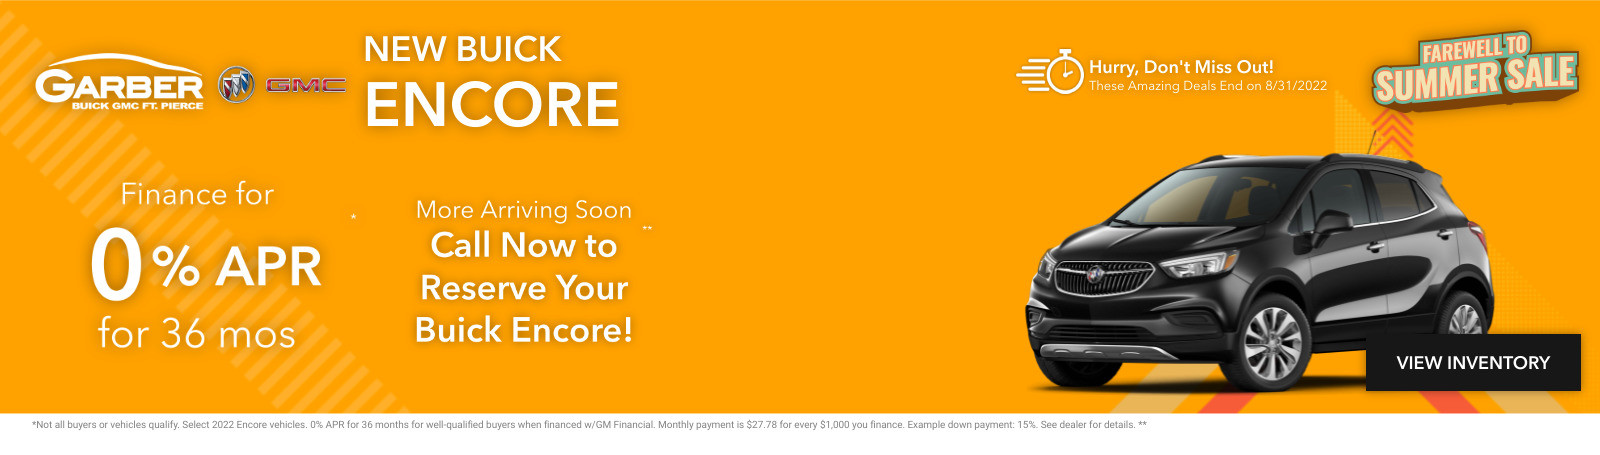 New Buick Encore Current Deals and Offers in Fort Pierce, FL